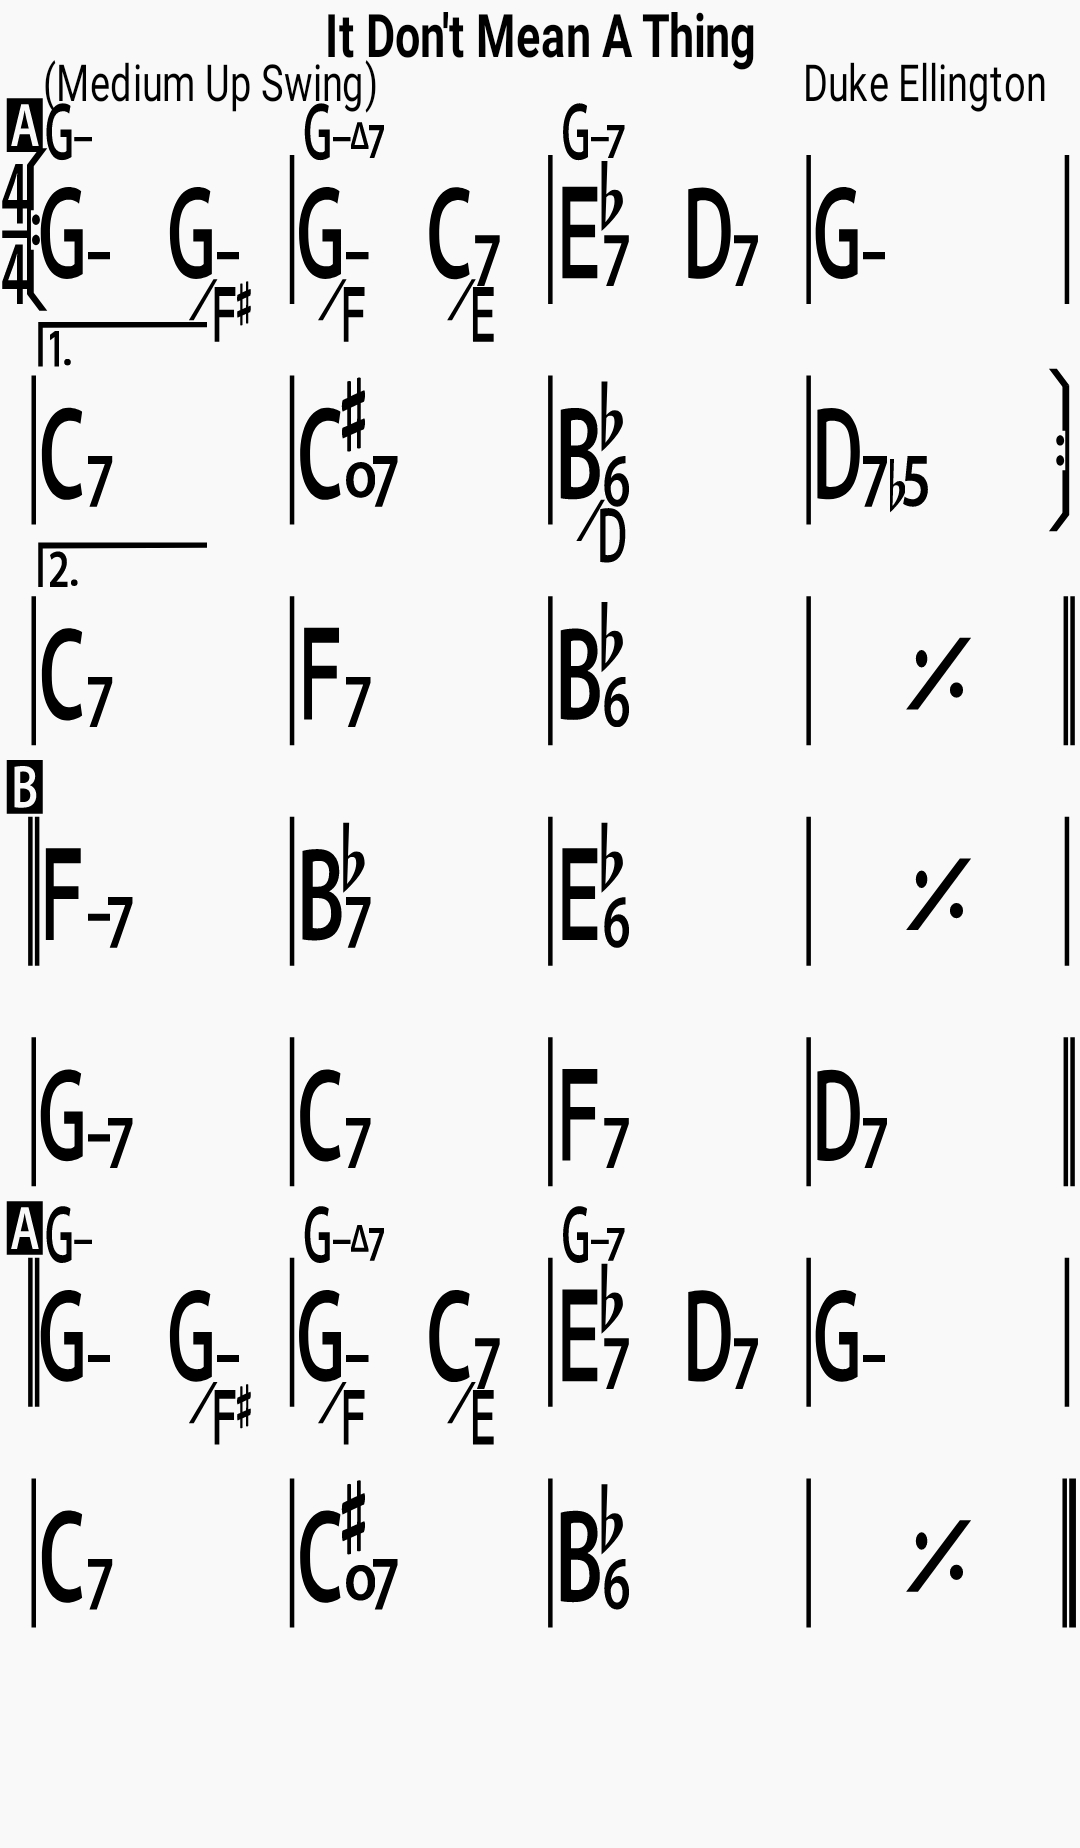 Chord chart for the jazz standard It Don't Mean A Thing